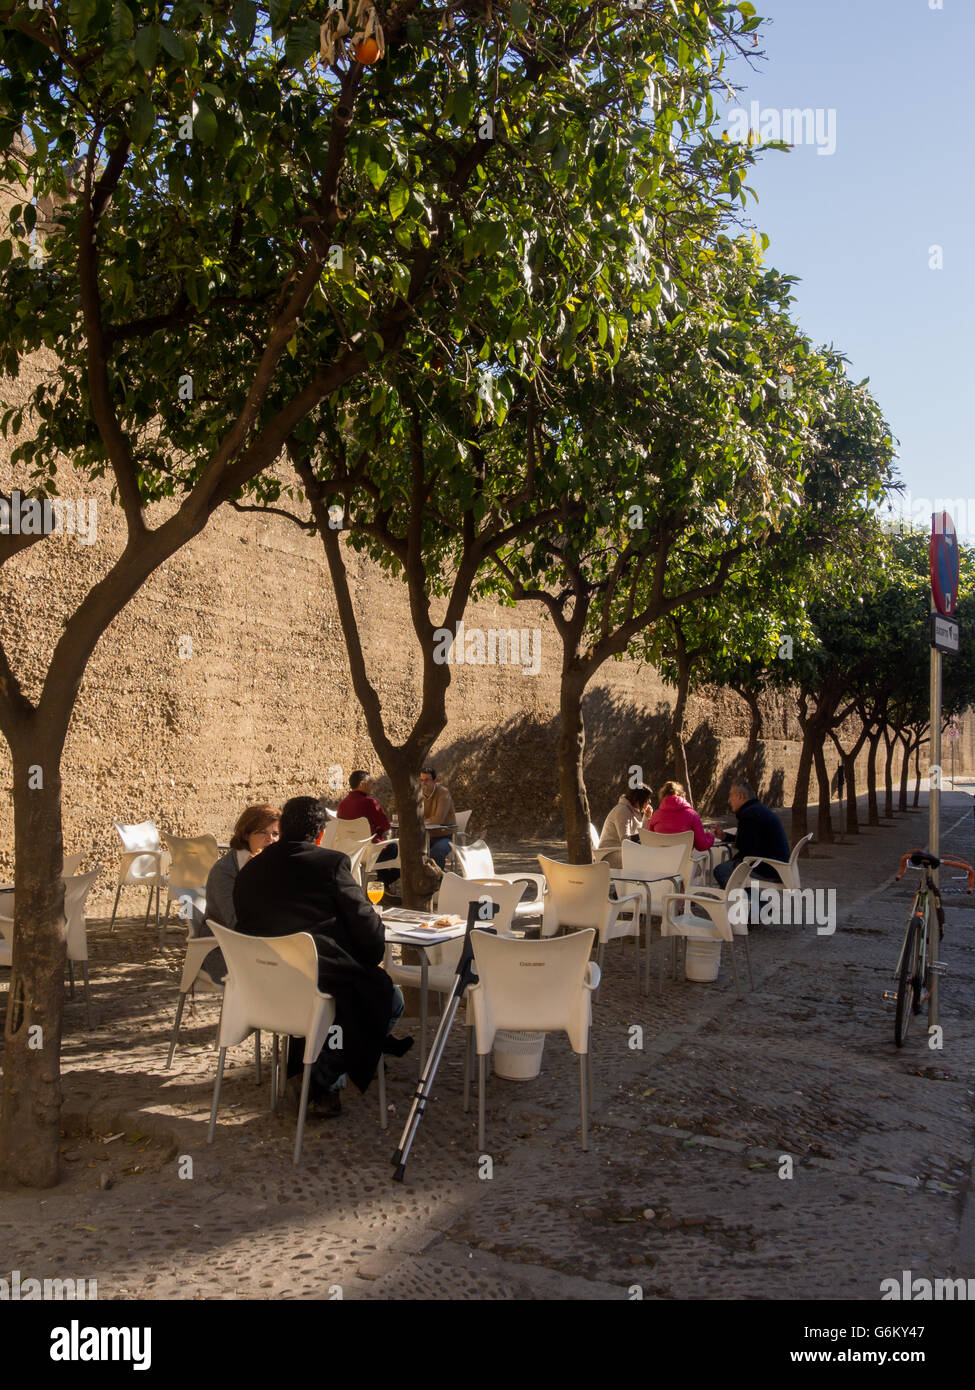 SEVILLE, SPAIN:  Cafe tables in the shadow of the city walls of Seville at Puerta de la Macarena - Stock Image